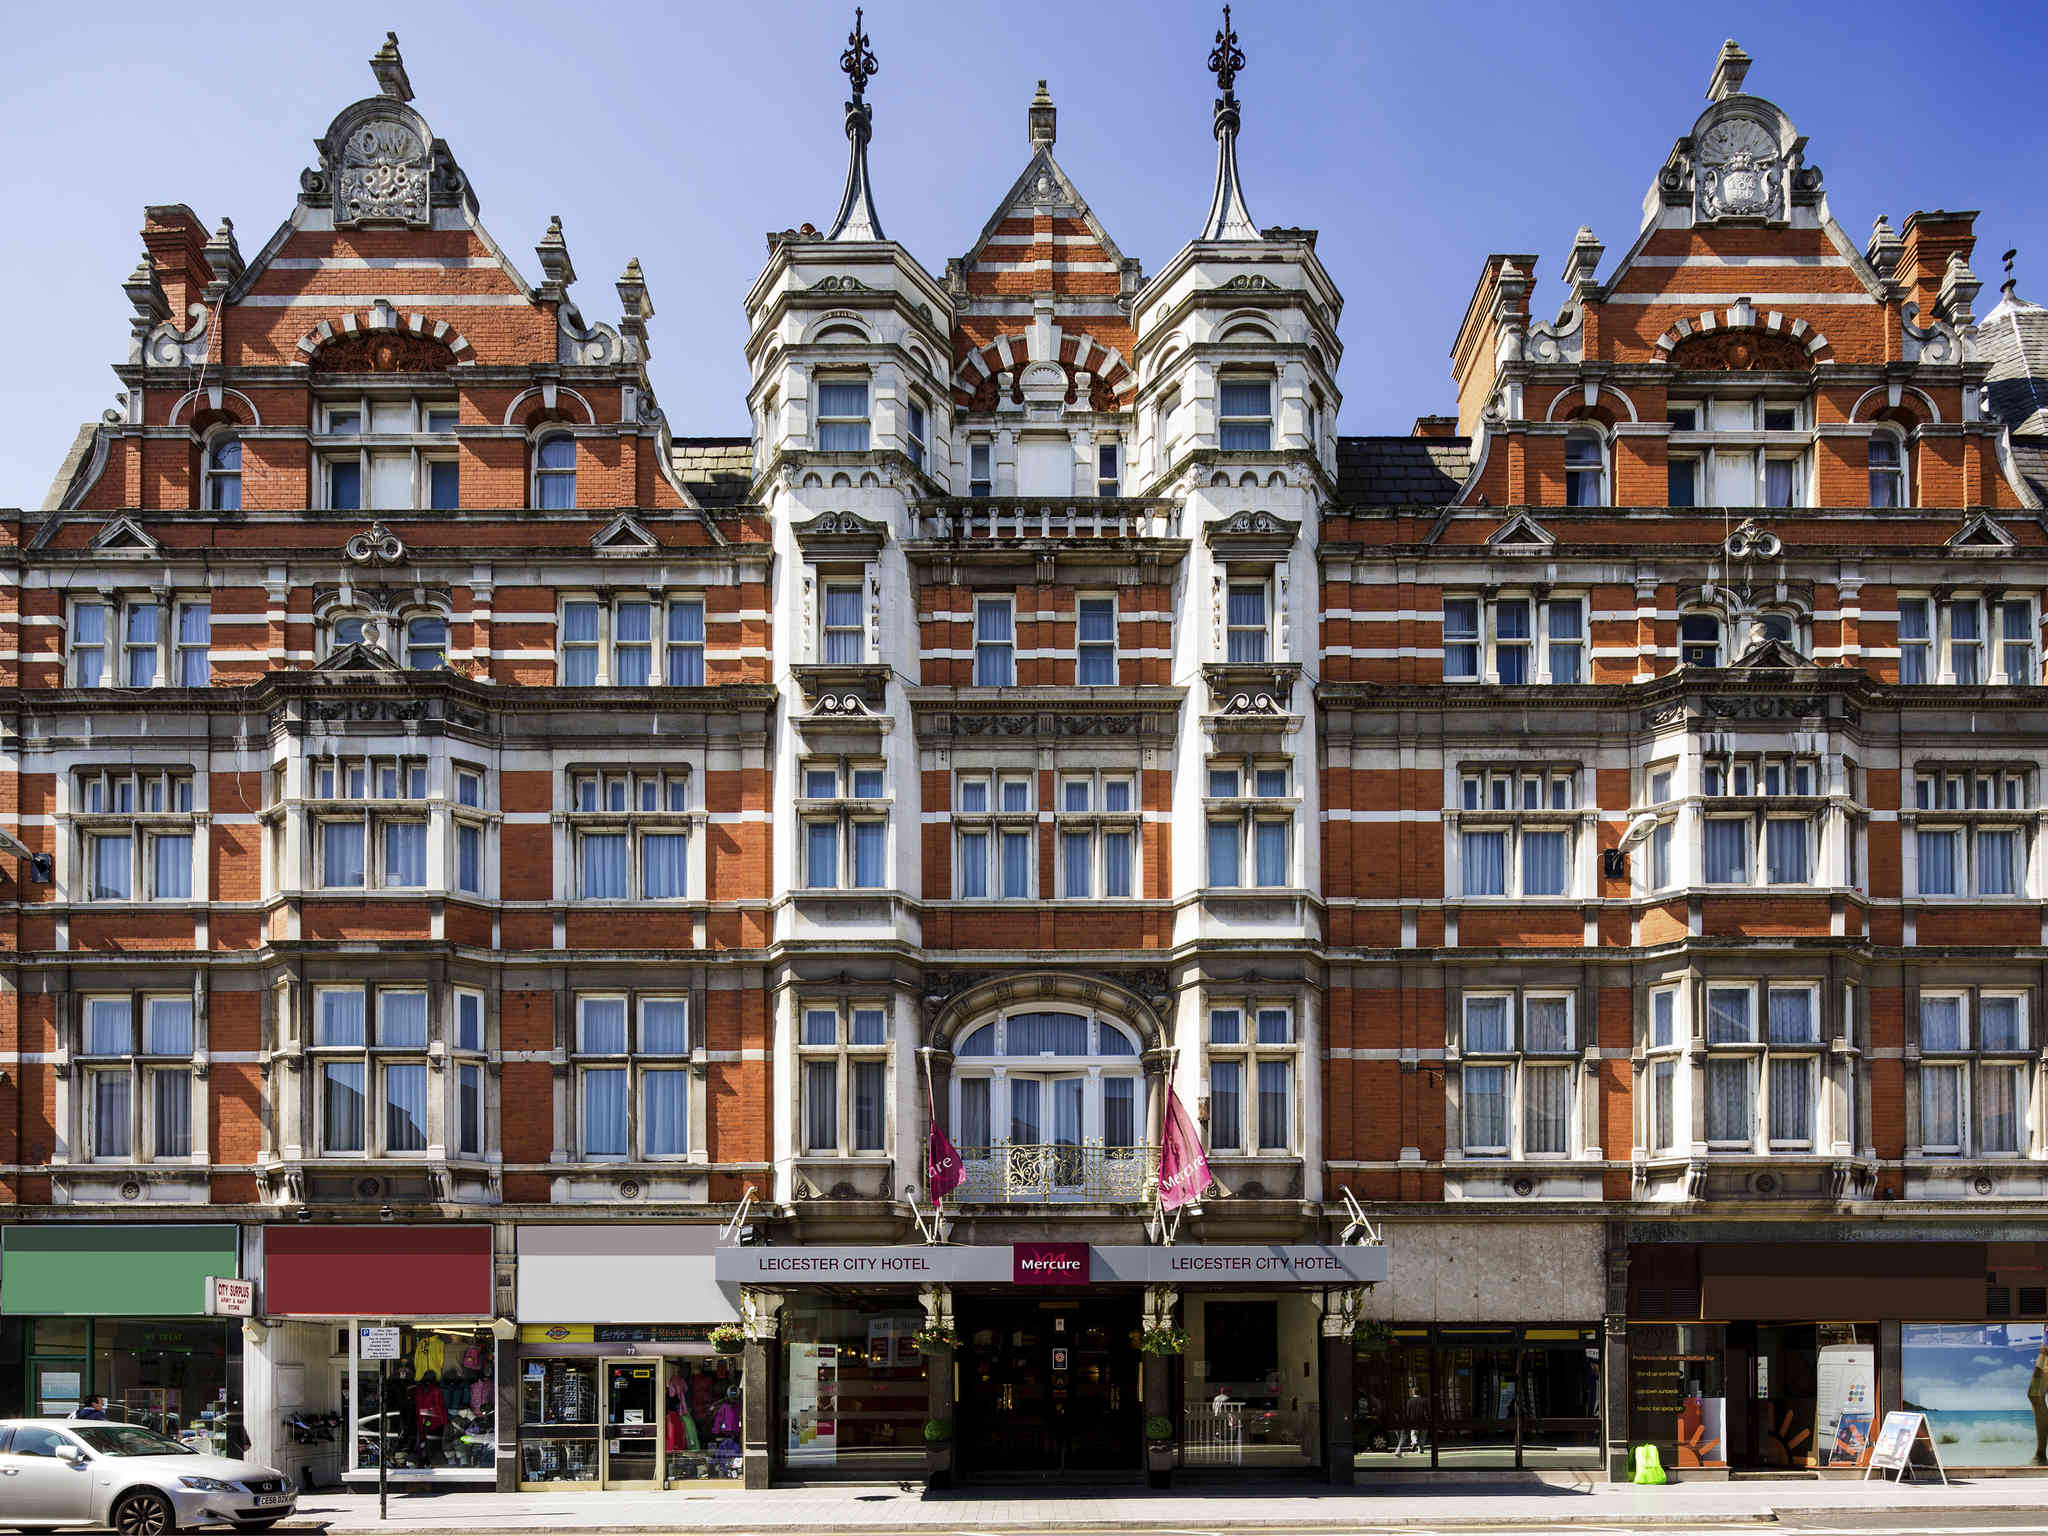 โรงแรม – Mercure Leicester The Grand Hotel